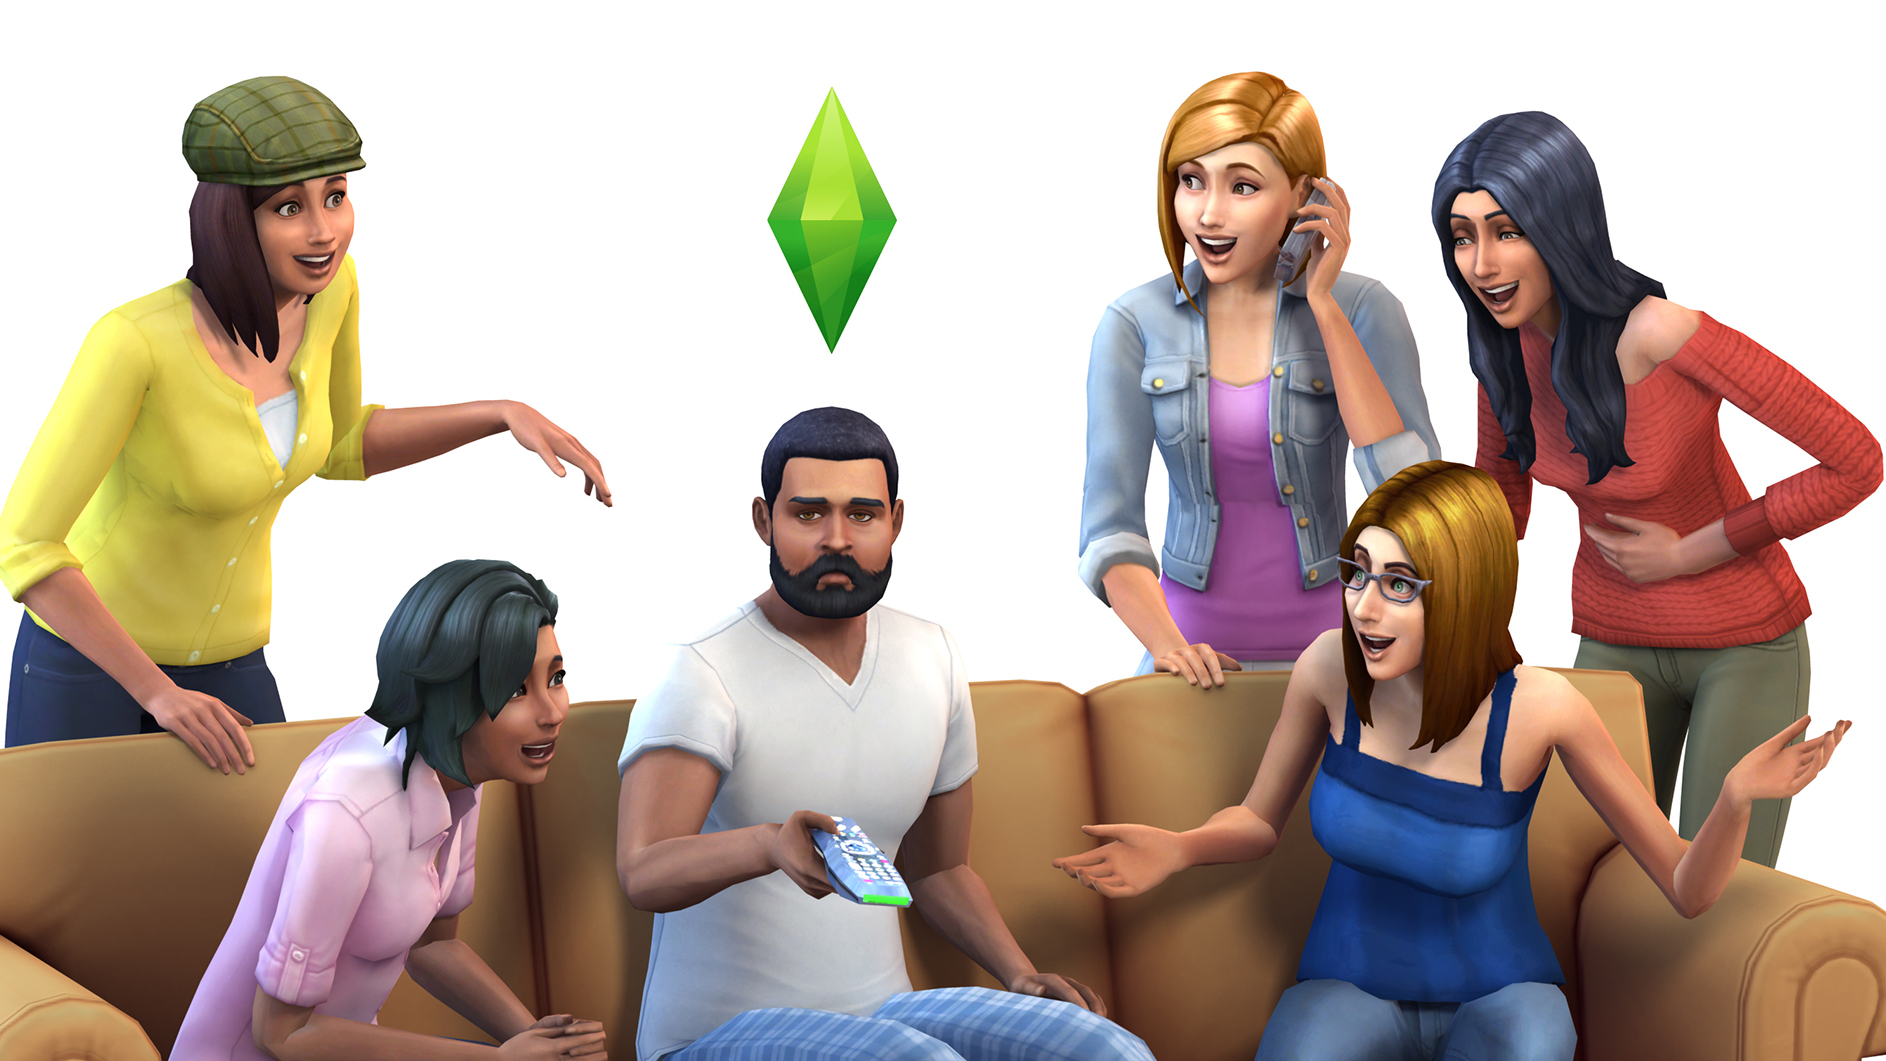 Sims 4 teen pregnancy cheat